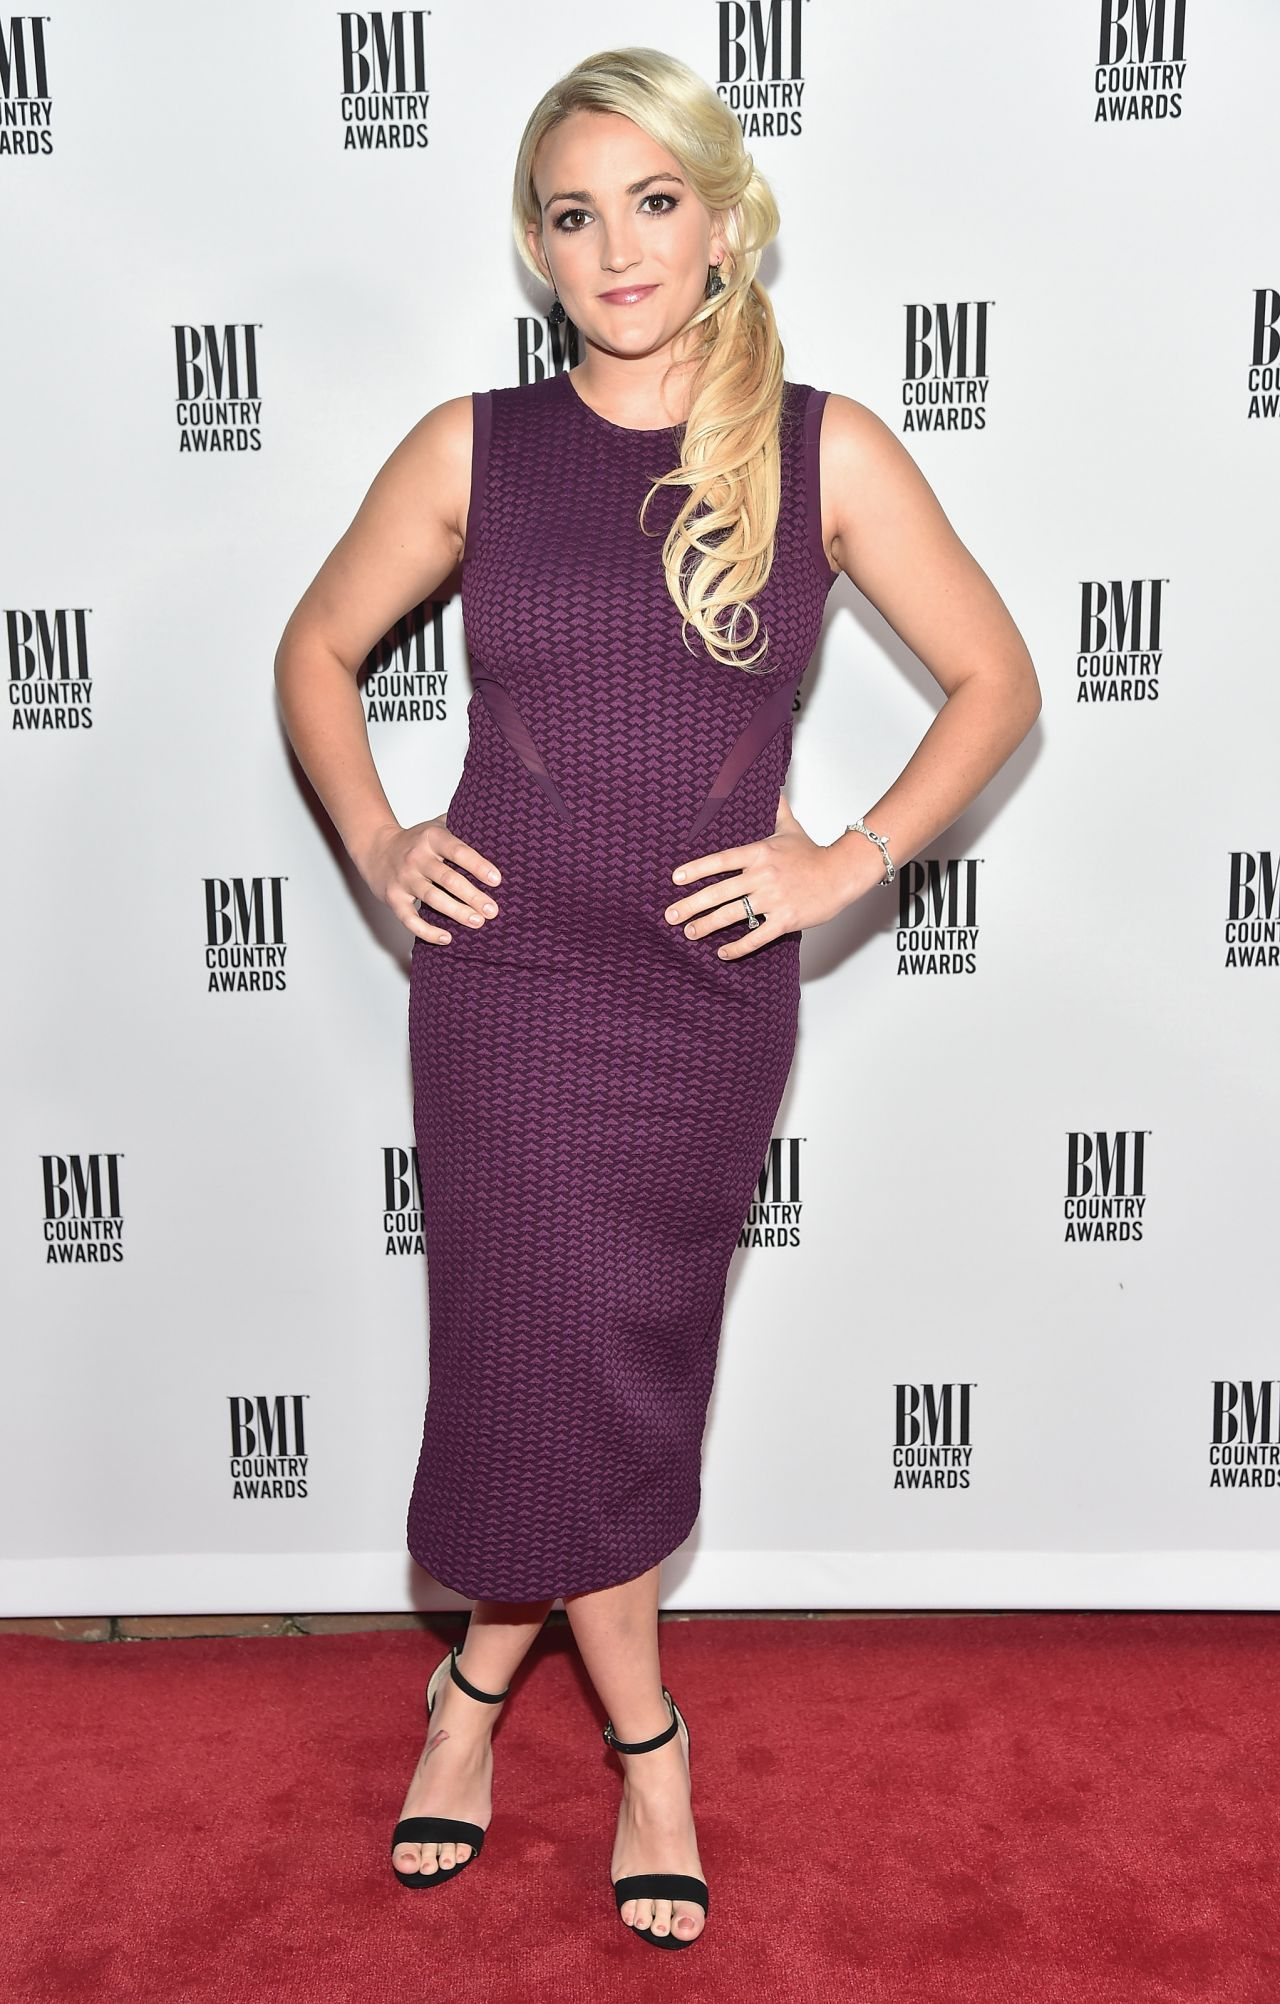 Jamie lynn spears 64th annual bmi country awards in nashville 11 1